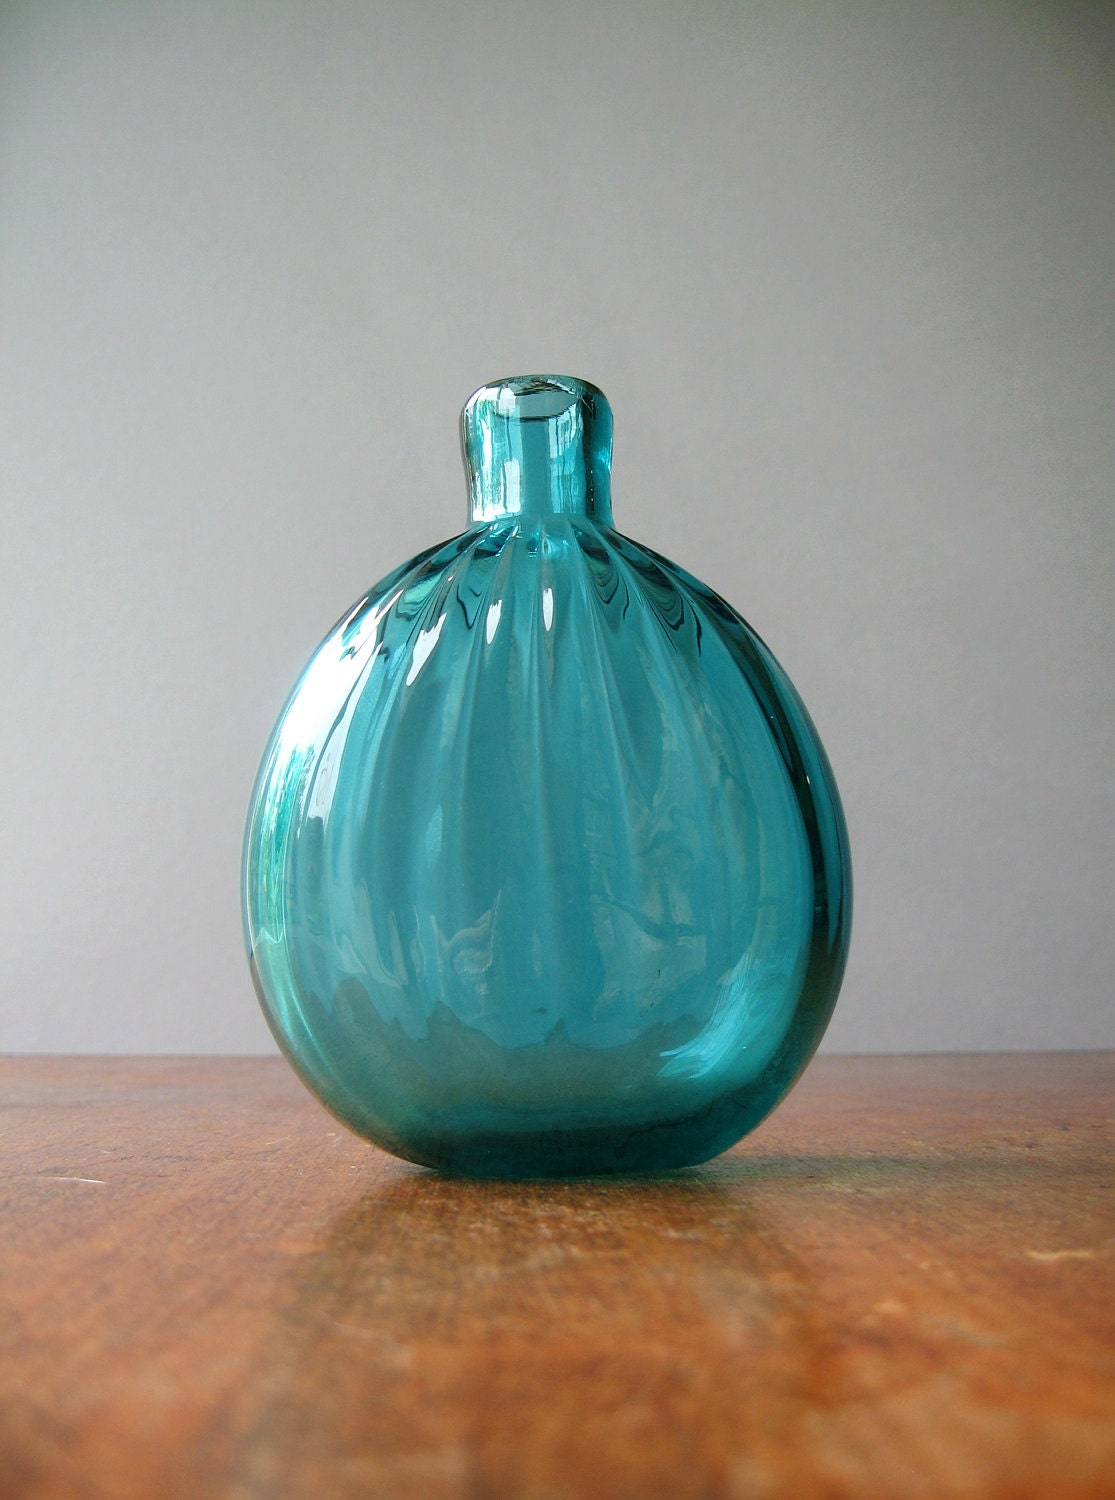 Vintage Gunderson Pairpoint Stiegel Type Glass Flask Bottle